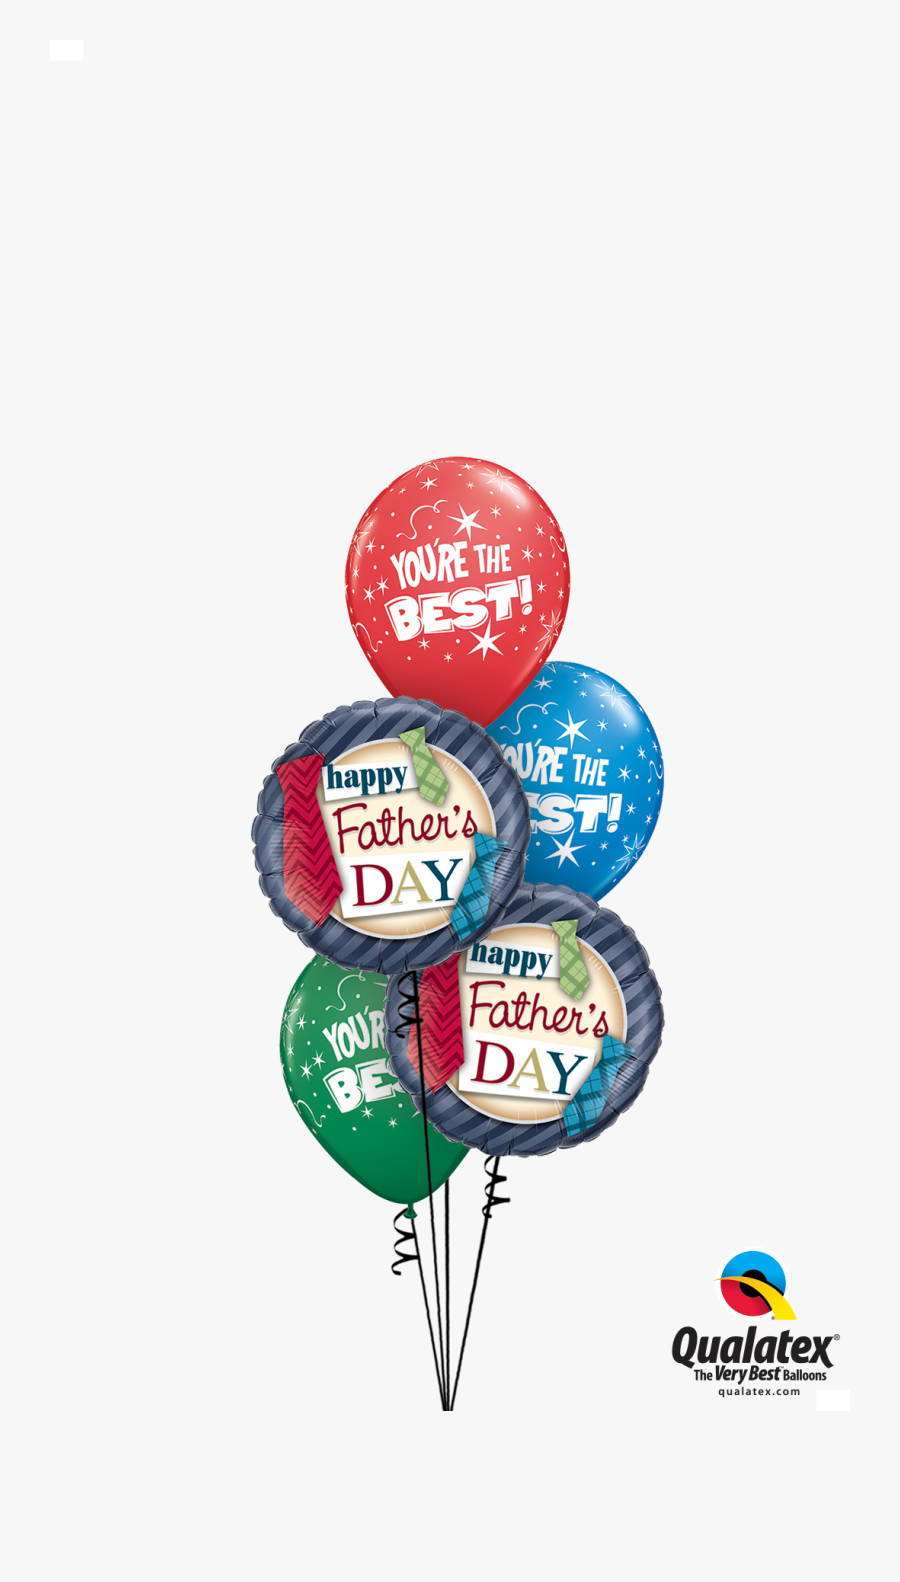 Transparent Fathers Day Tie Clipart - Happy Fathers Day Balloon, Transparent Clipart